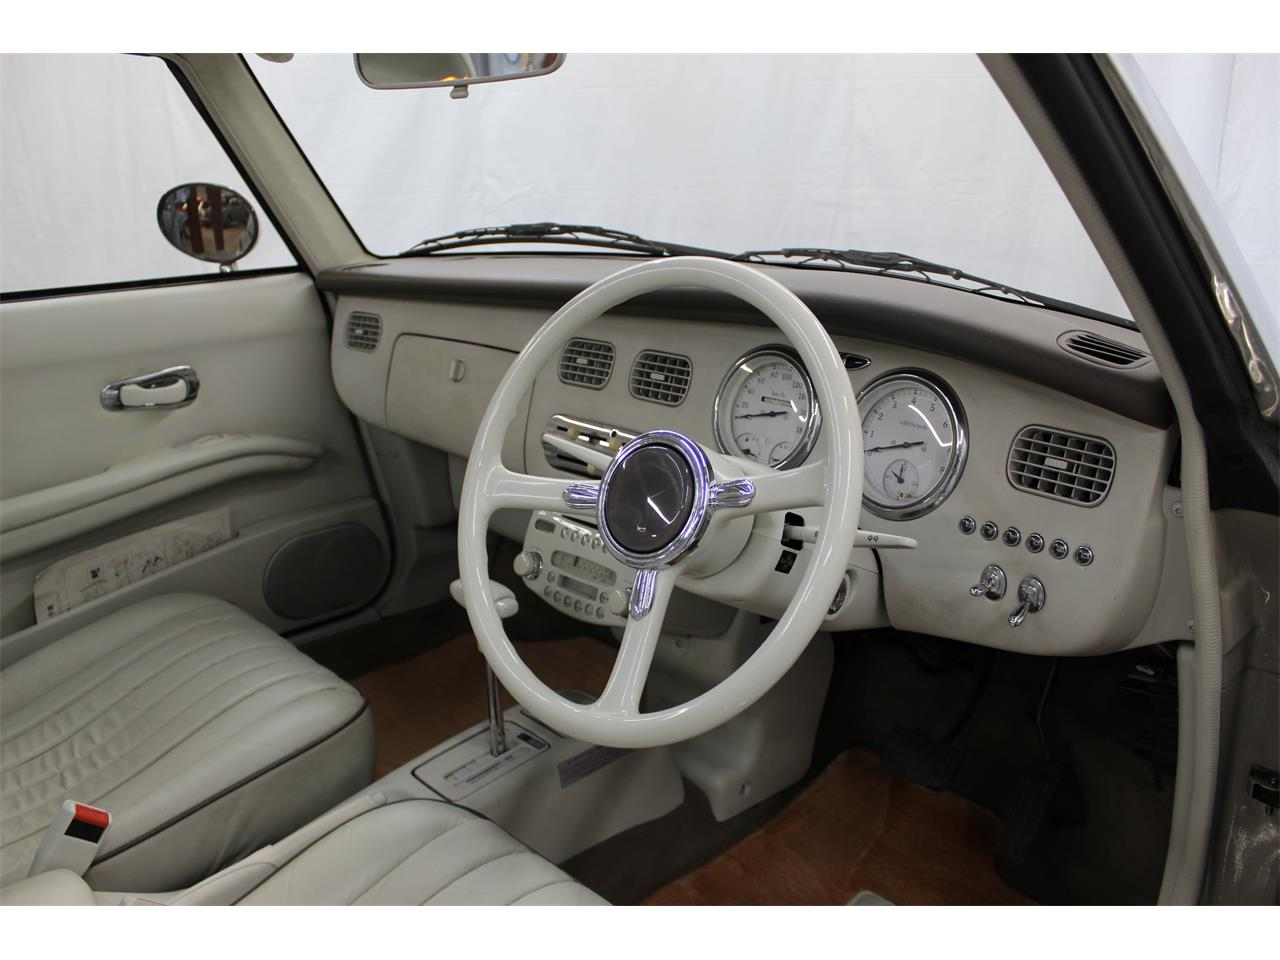 1991 Nissan Figaro for sale in Christiansburg, VA – photo 25